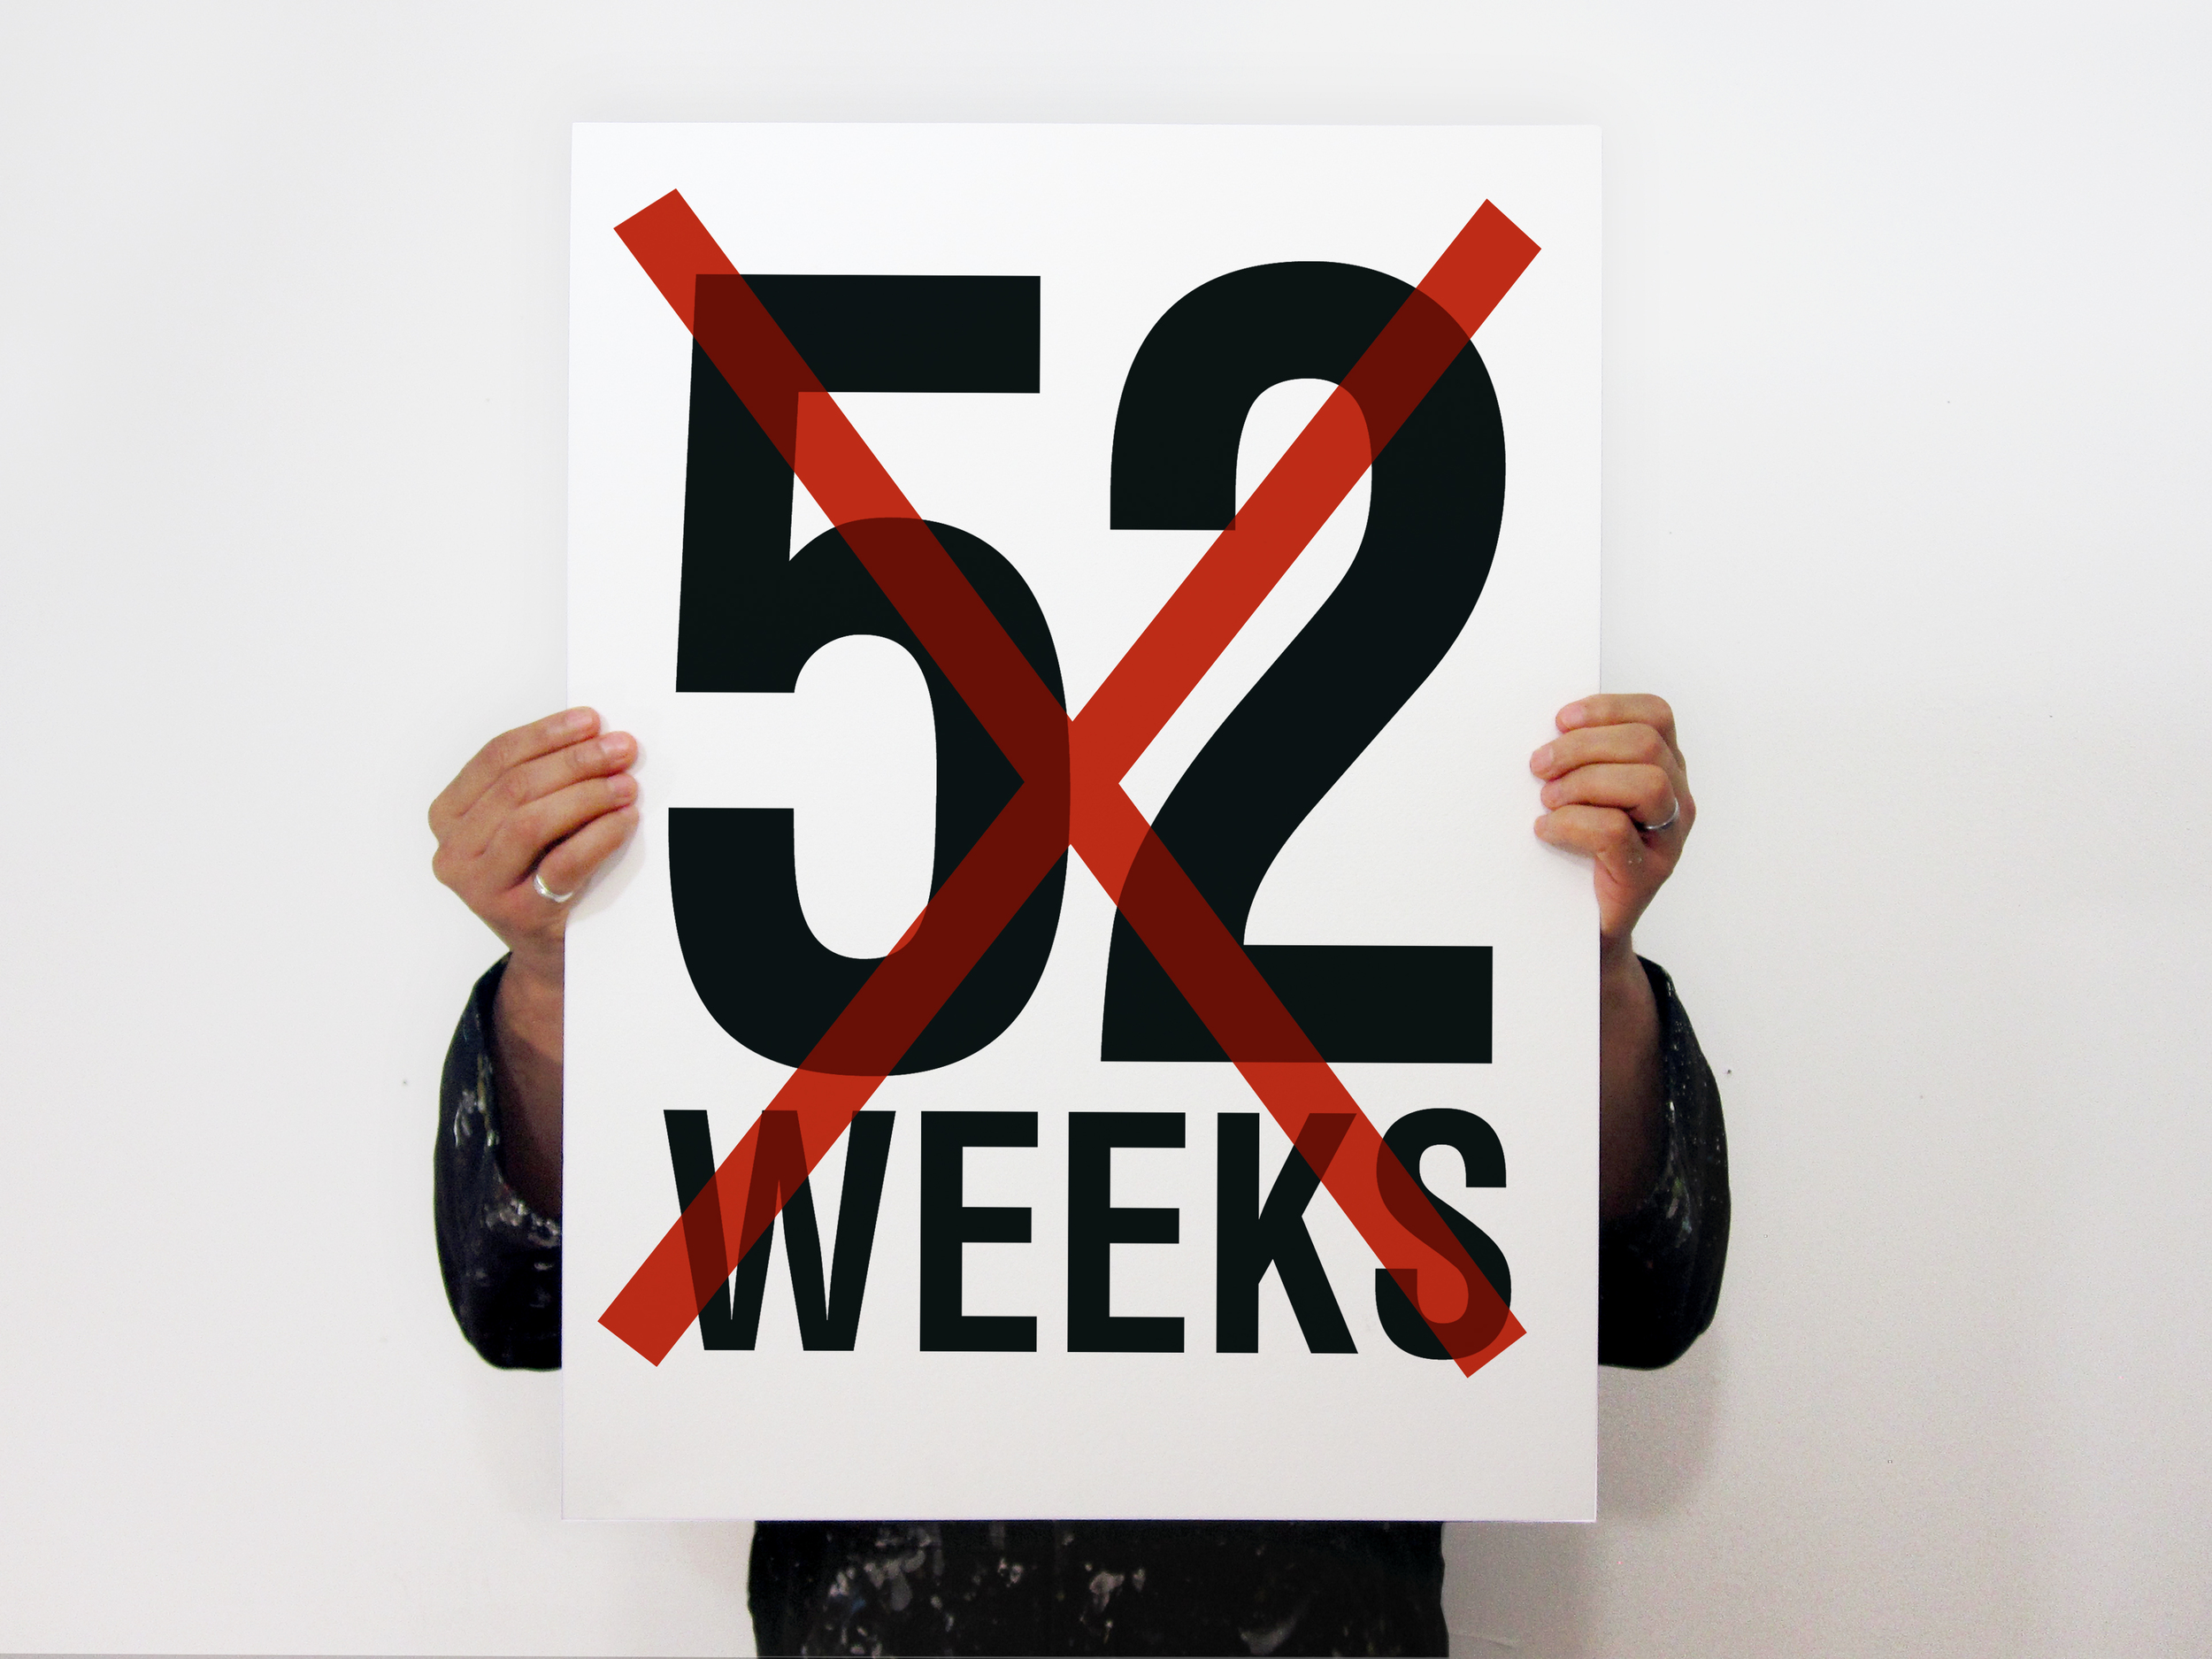 The 52 Week Project